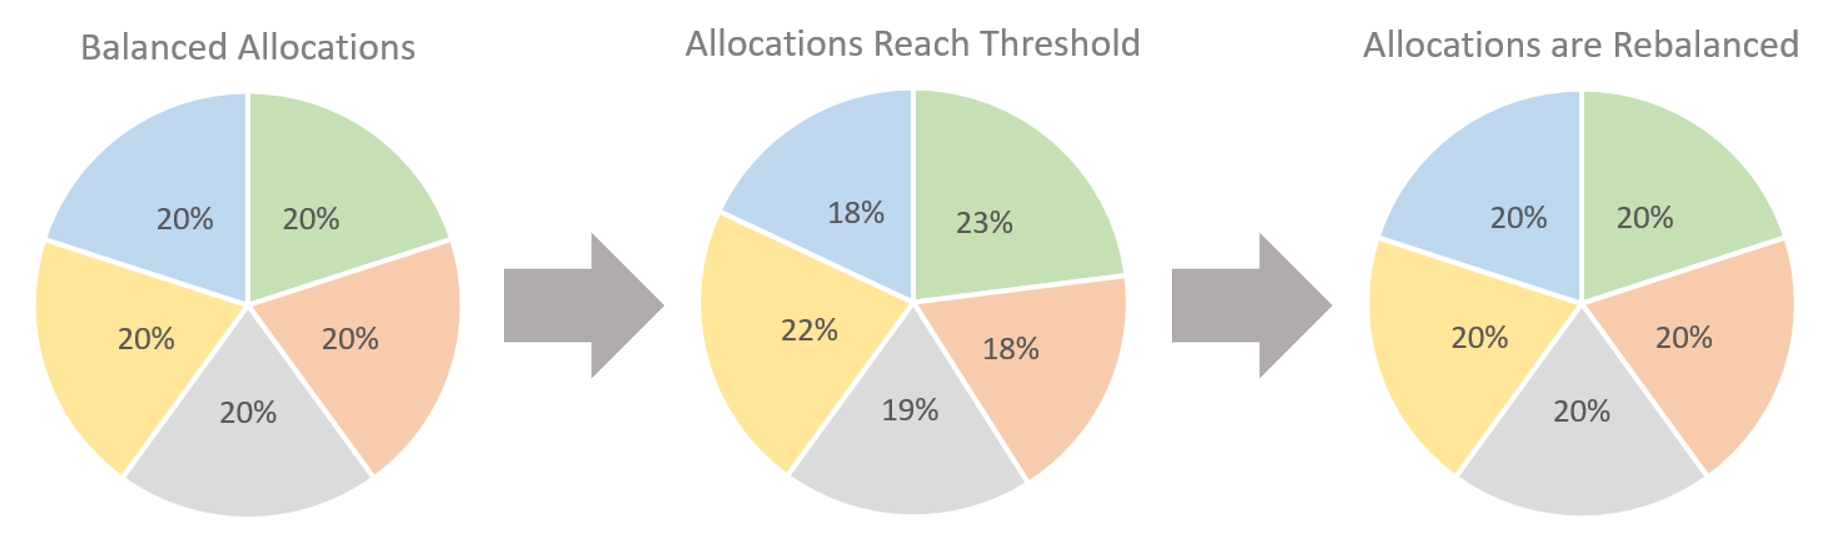 This example demonstrates a 15% deviation threshold. We can see the green asset has reached the 15% deviation threshold because a current allocation of 23% means the green asset has deviated from its target allocations by 15%.